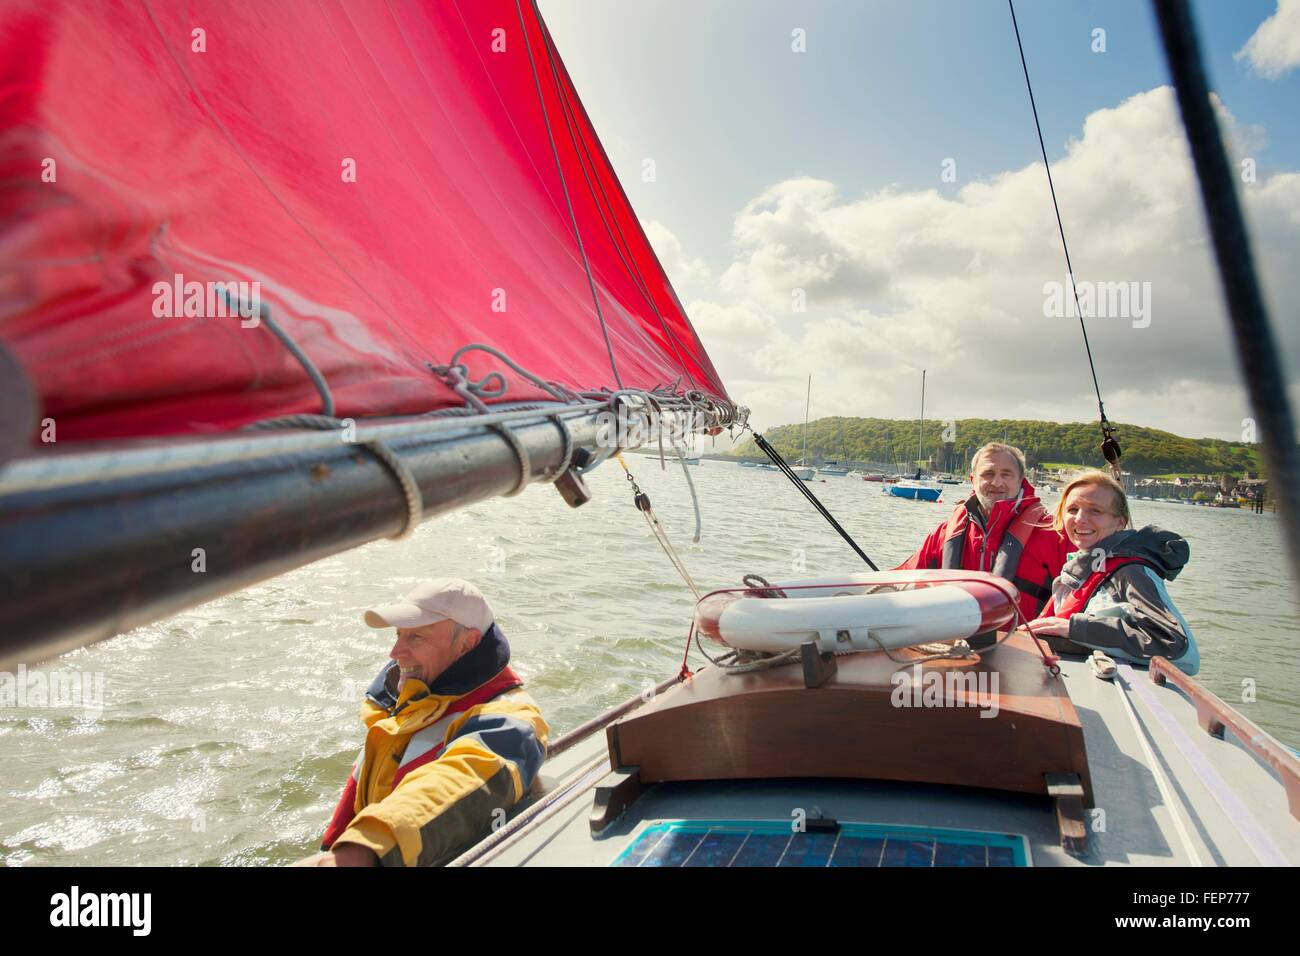 Small group stockfotos small group bilder alamy for Kleine esstisch gruppe